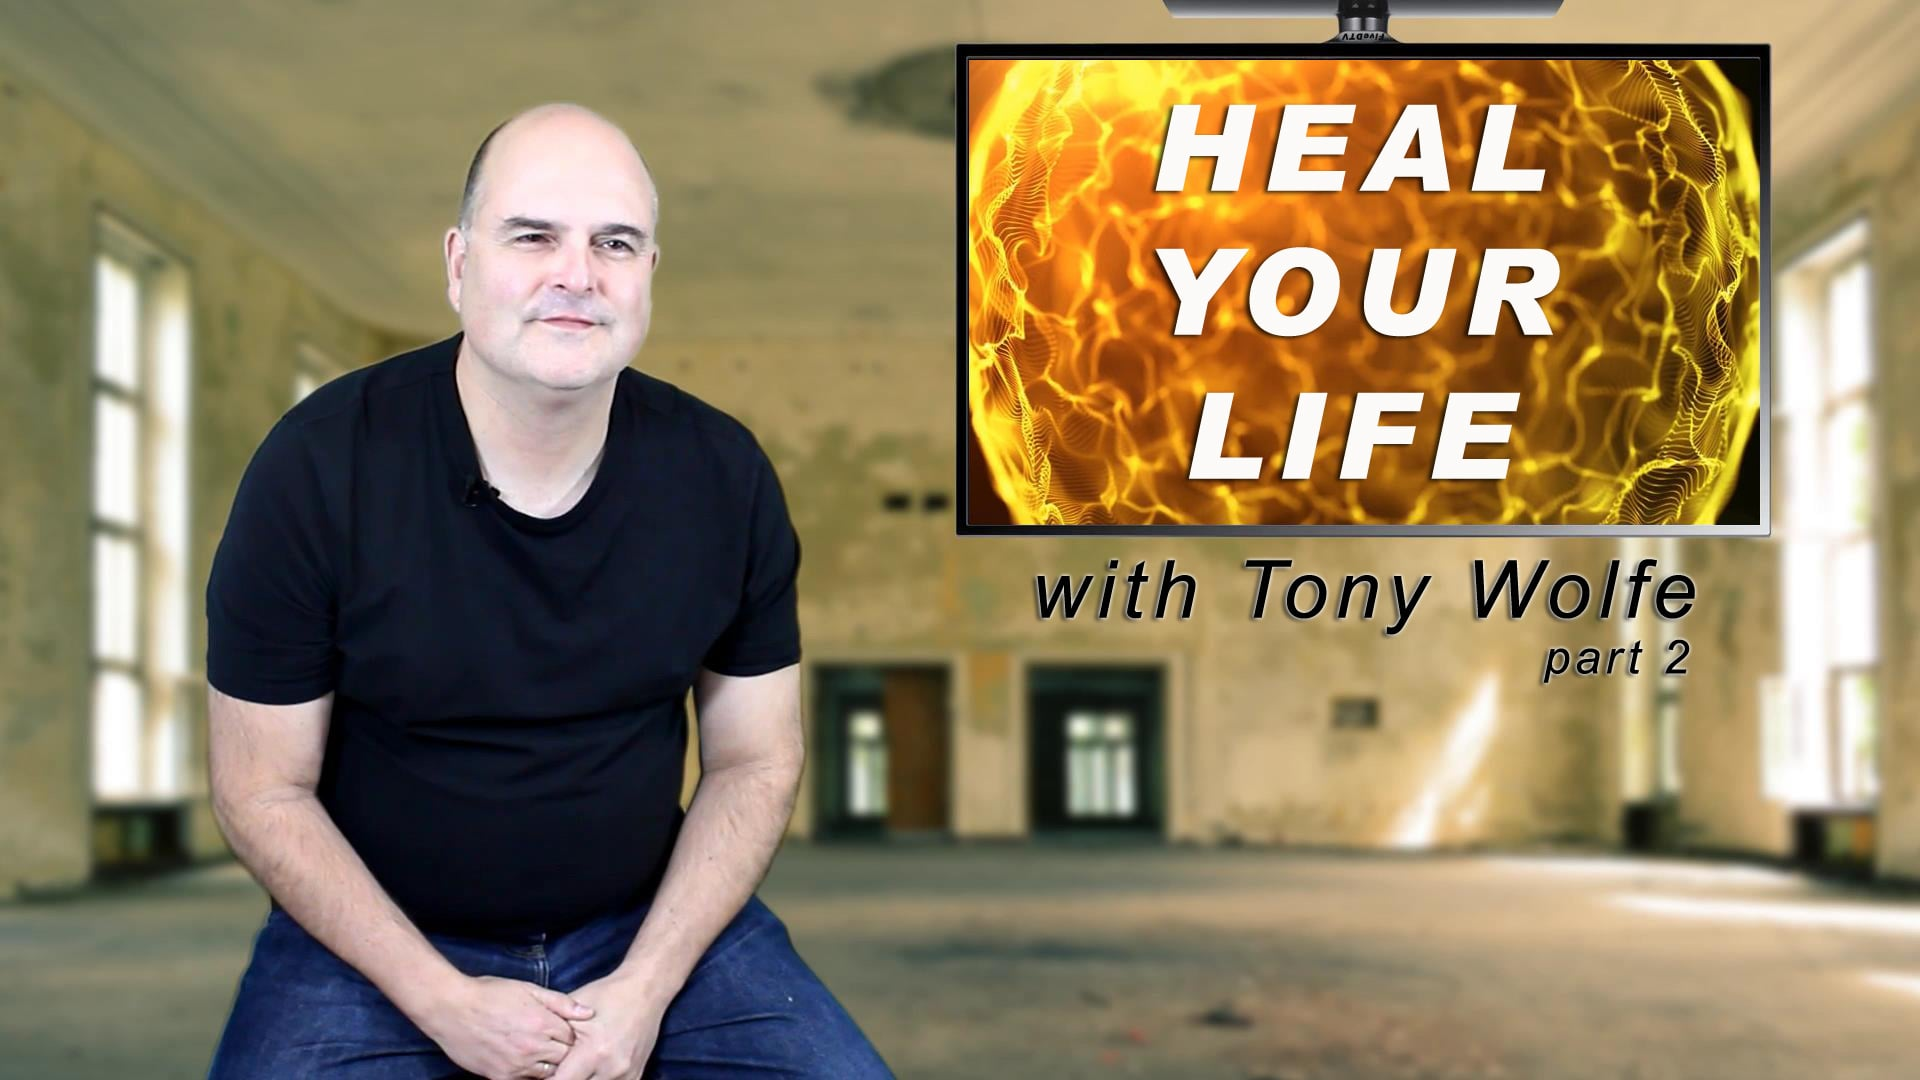 Part 2: Heal Your Life with Tony Wolfe